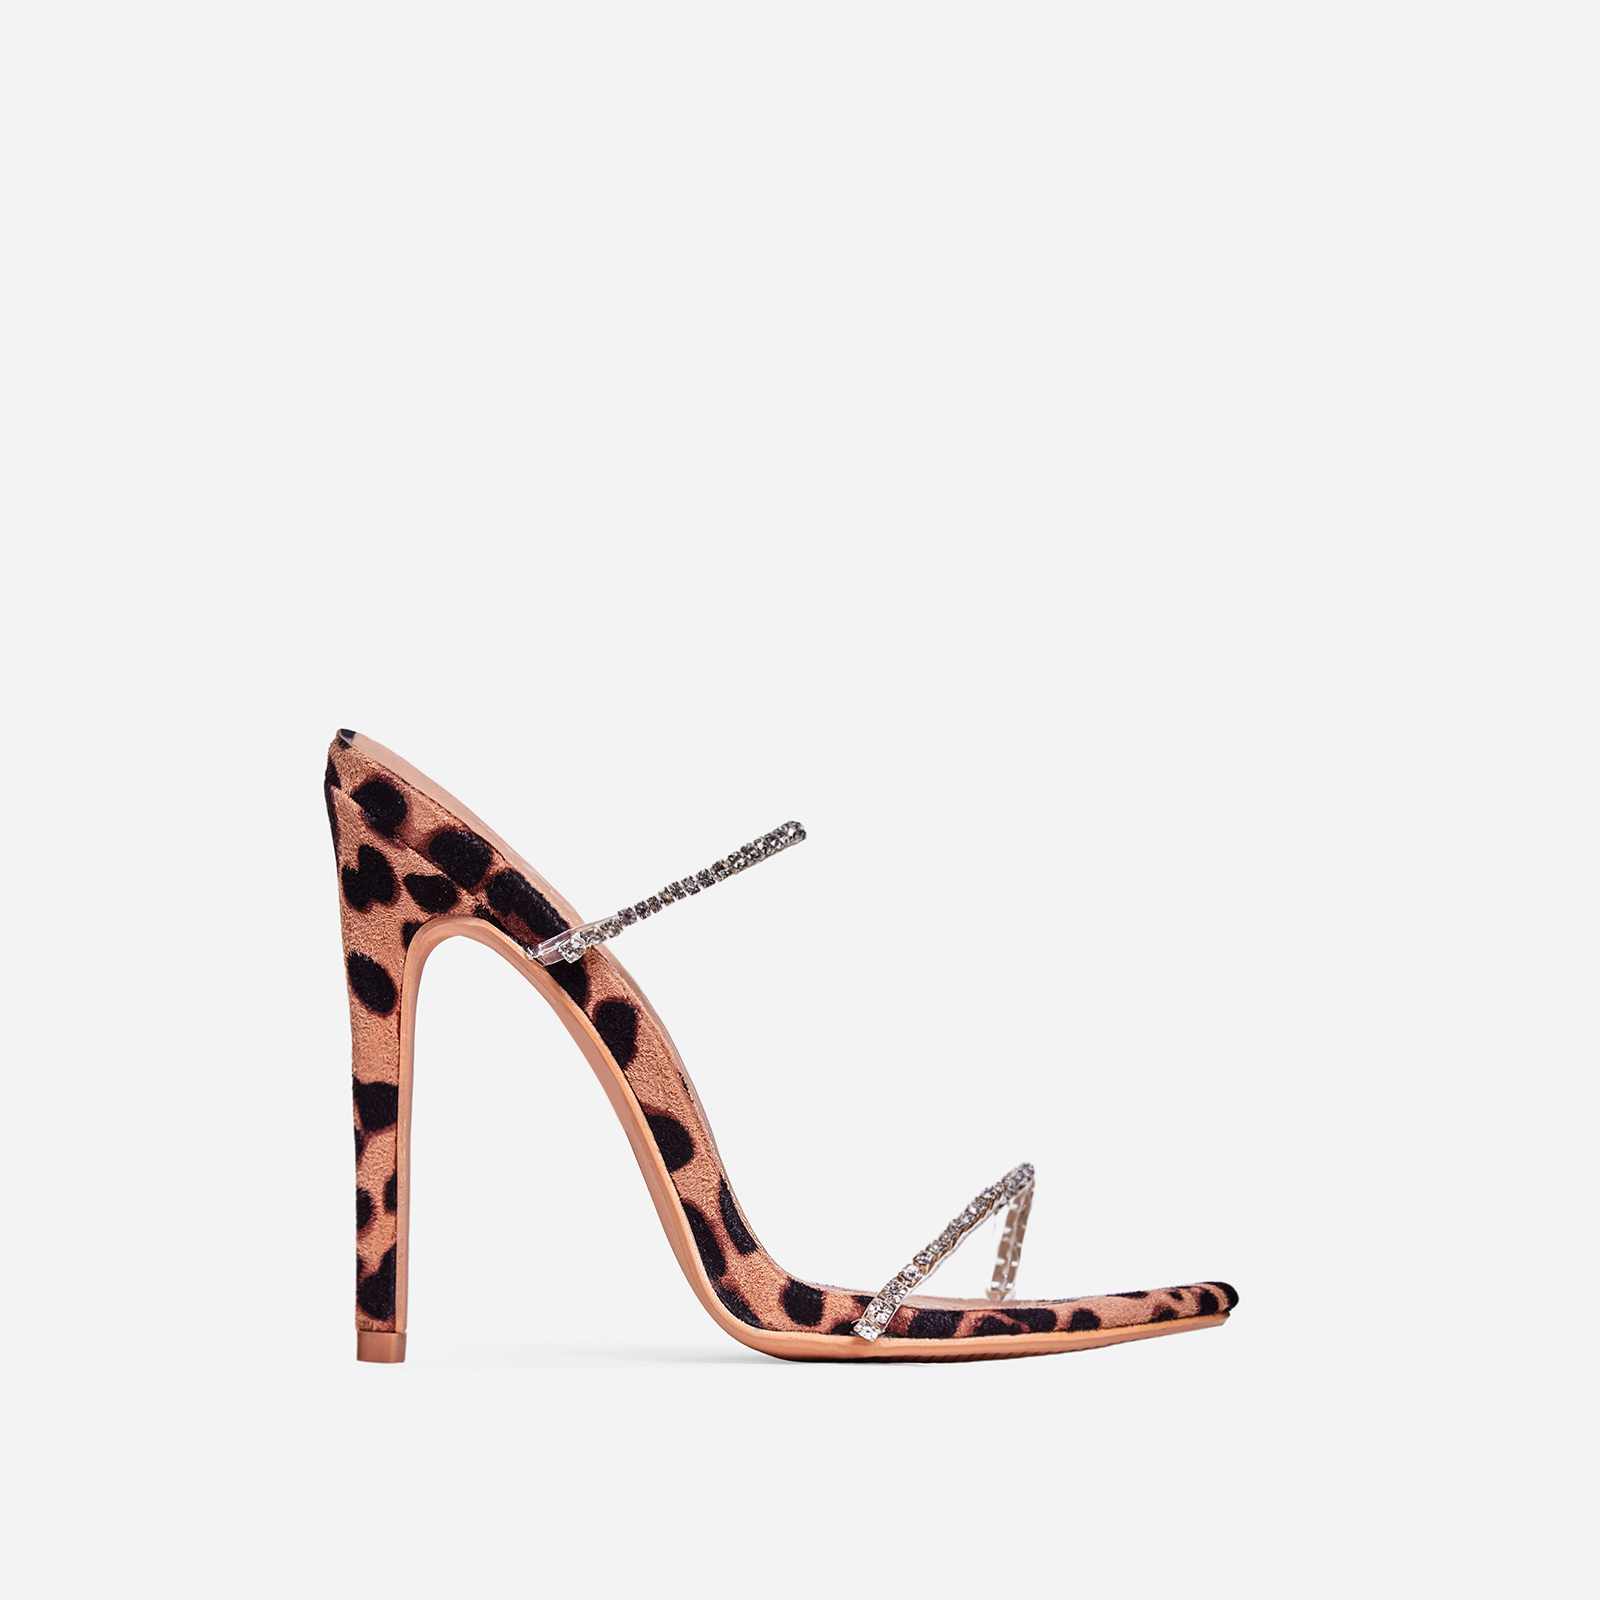 Chaos Diamante Detail Barely There Heel Mule In Tan Leopard Print Faux Suede